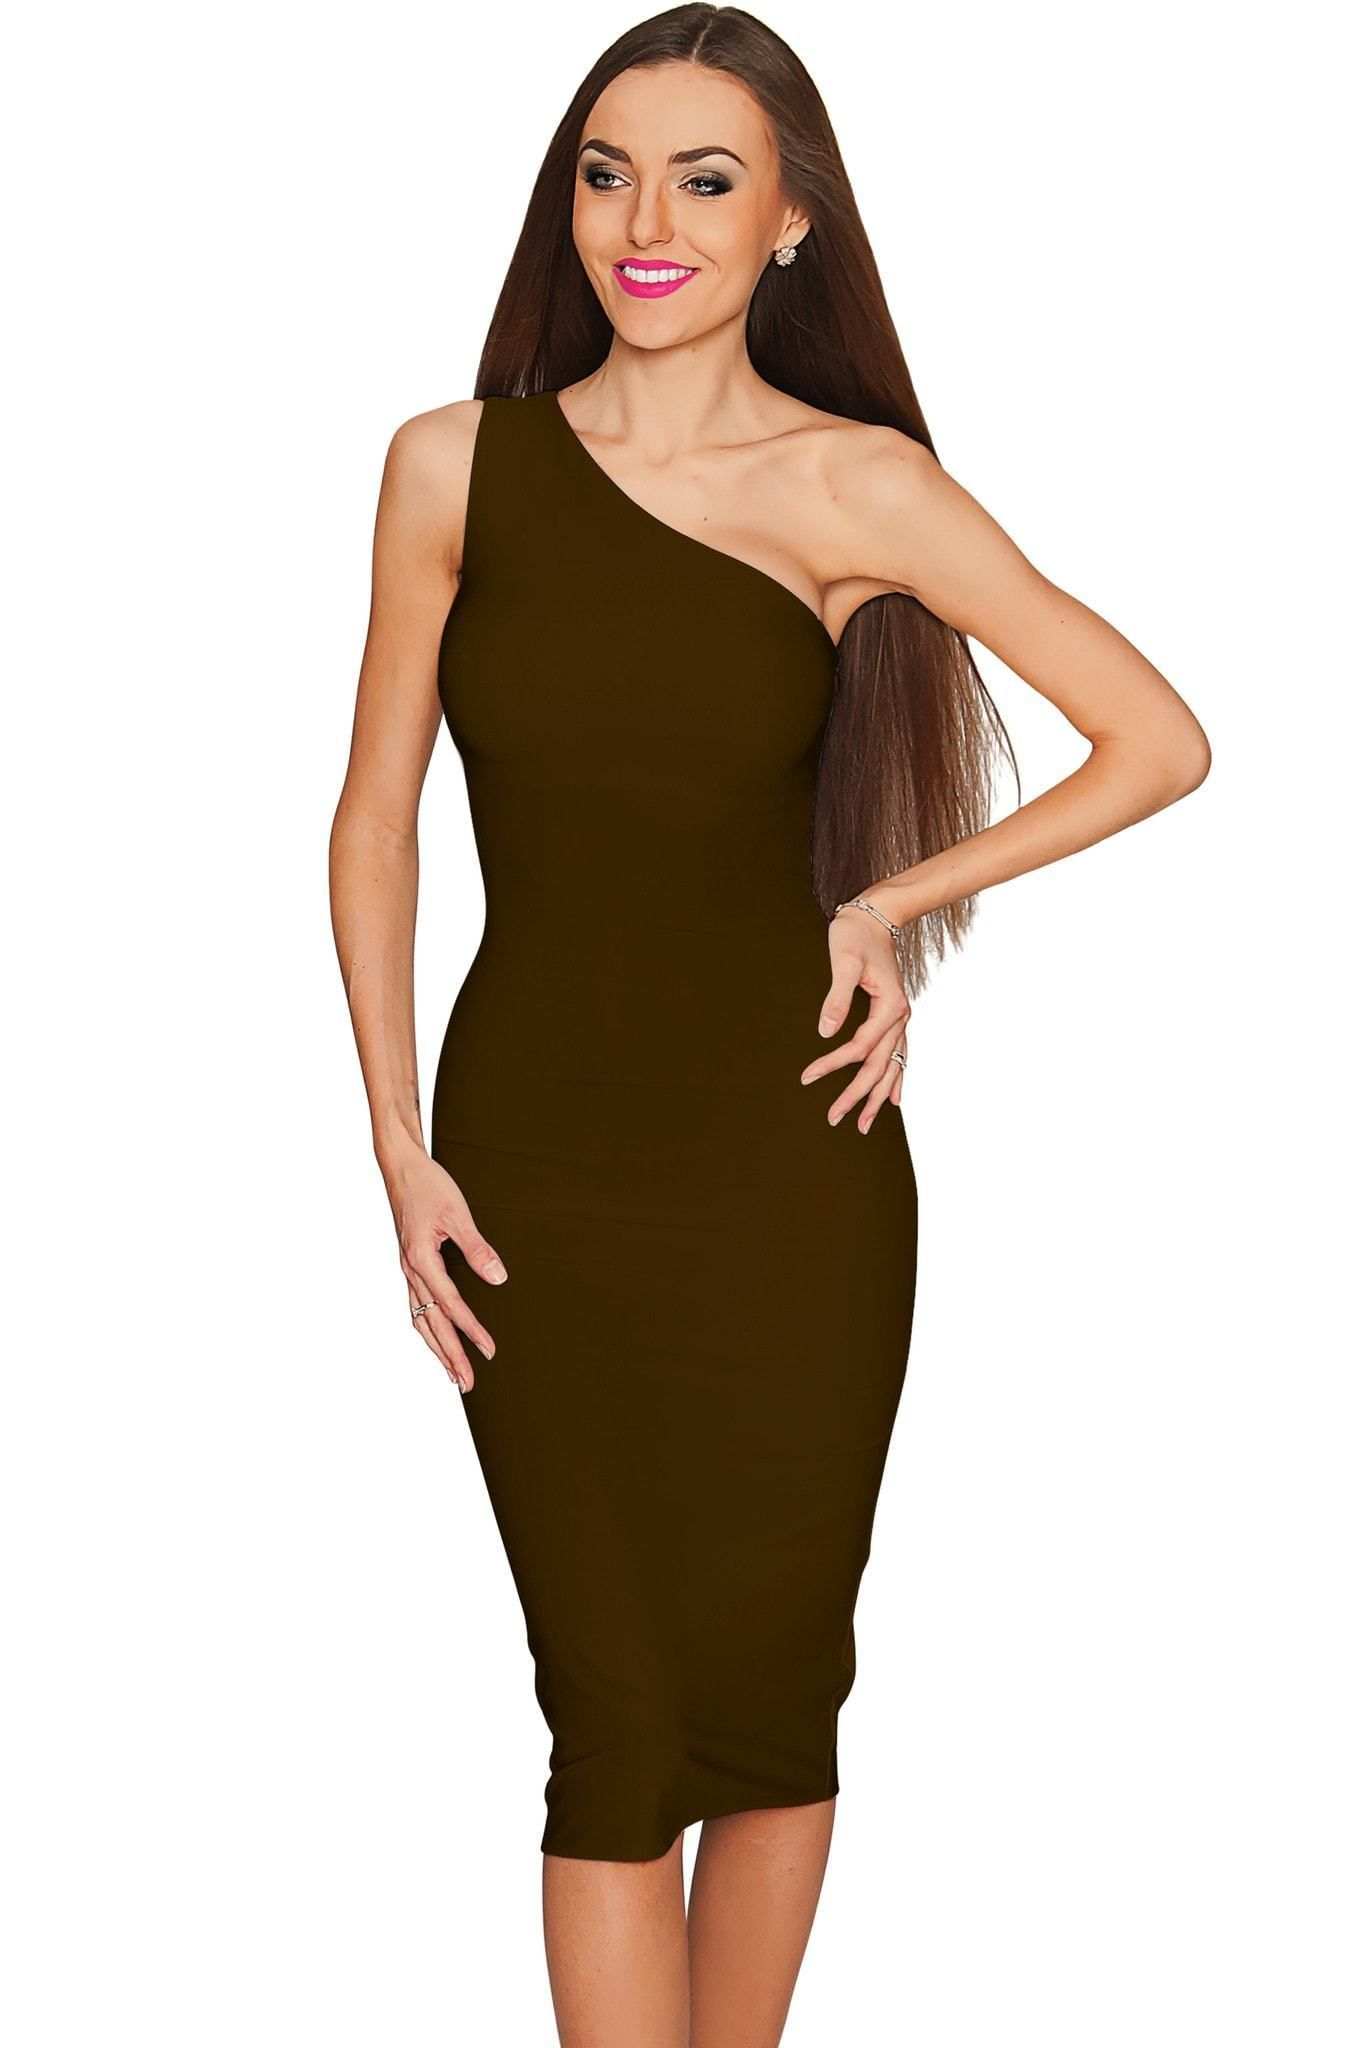 437decb9c7c9 Chocolate Layla One-Shoulder Dress - Women